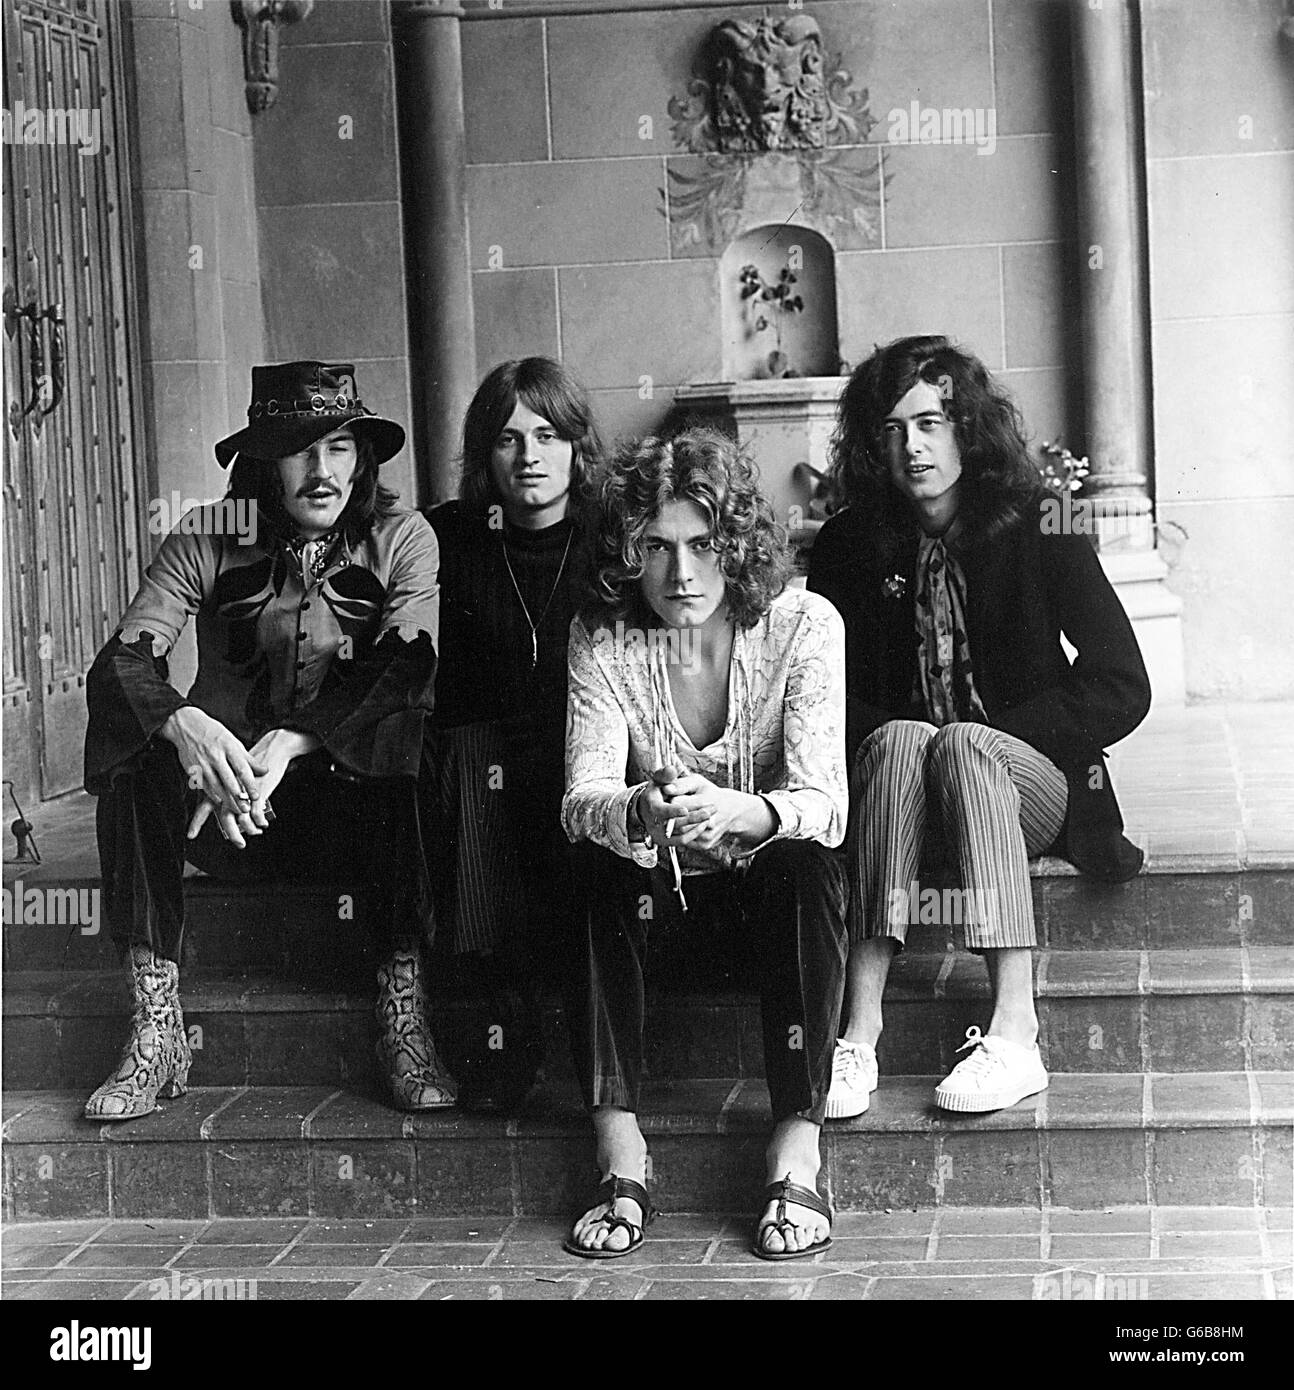 June 23 2016 led zeppelin wins stairway to heaven copyright lawsuit after